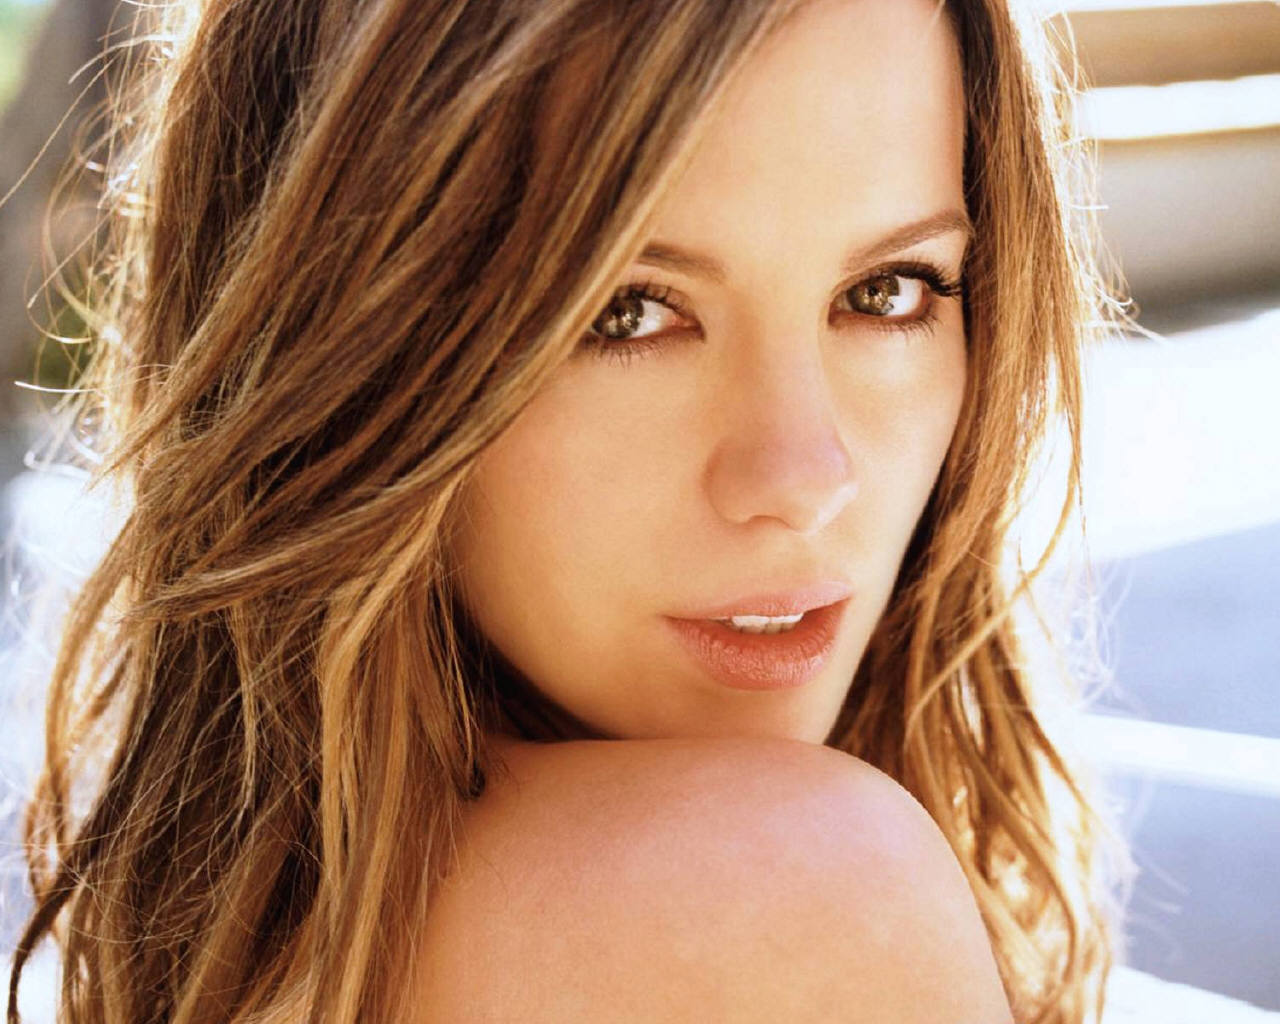 faltar kate beckinsale, la recuerdan?? salio en la pelicula click con ...